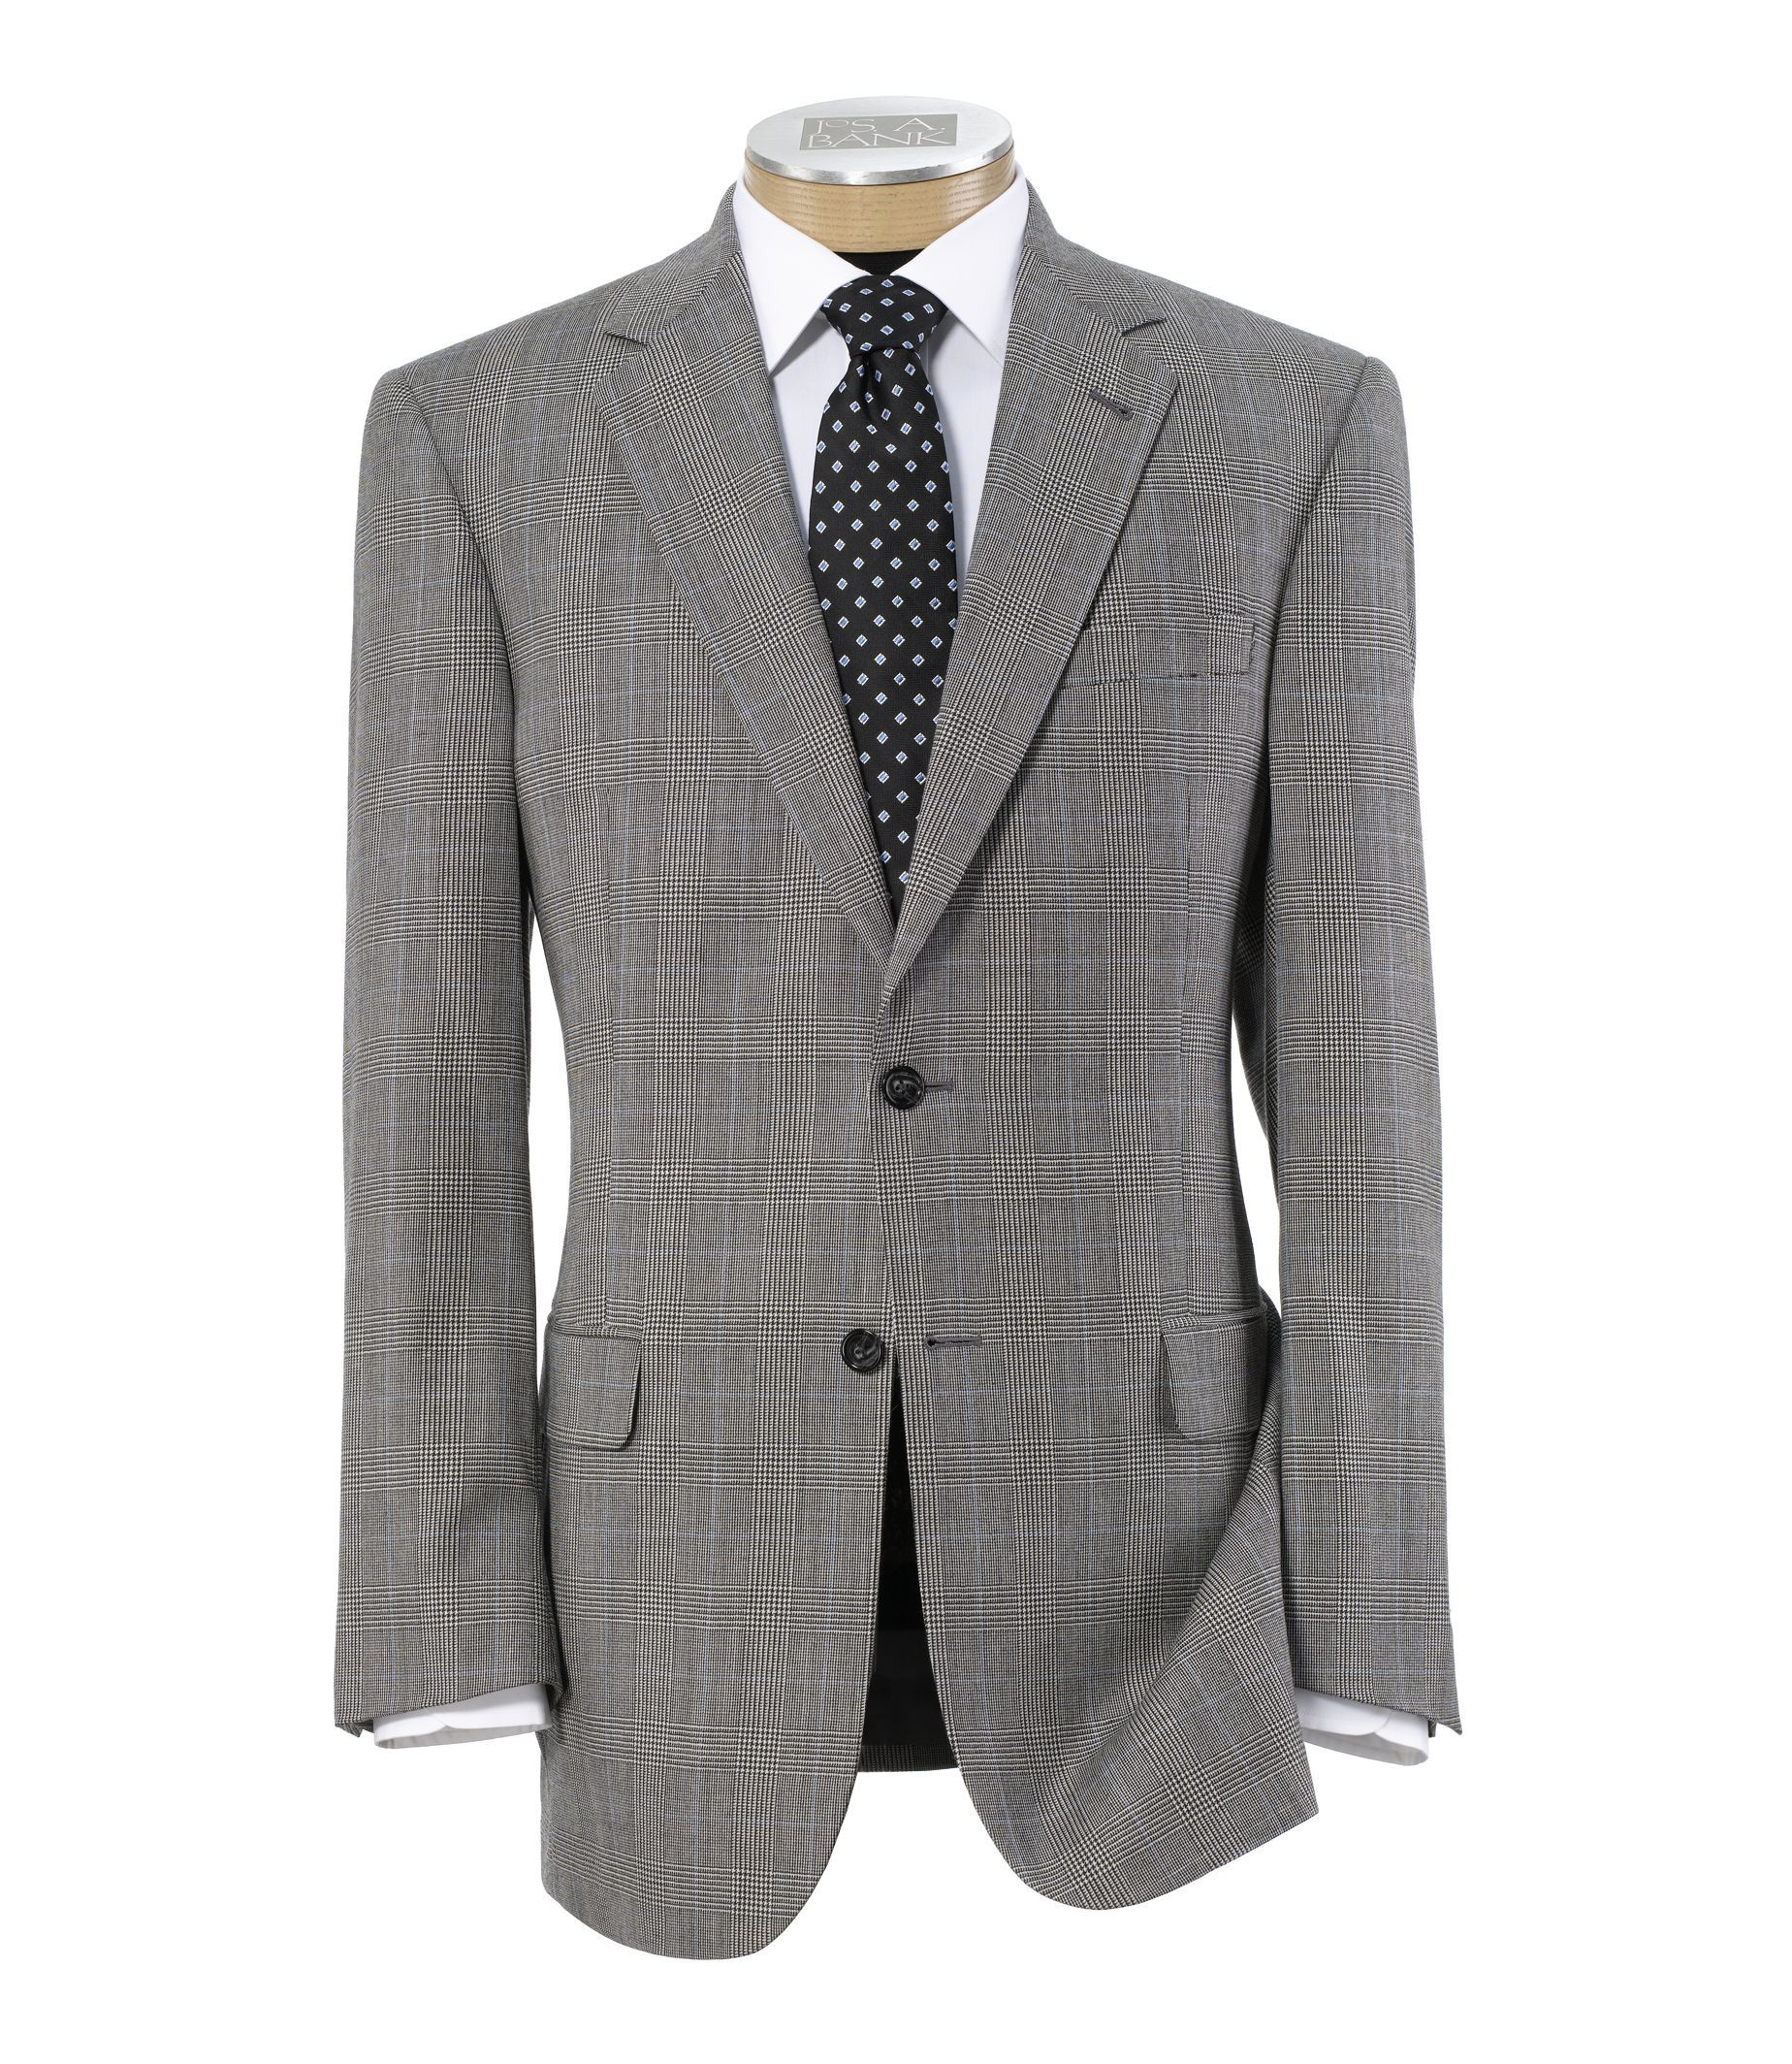 Men's Suit Signature 2-Button Wool Pattern Suit with Pleated Trousers JoS. A. Bank - BLK/WT PLD W/BLUE DE - 44 - SHORT